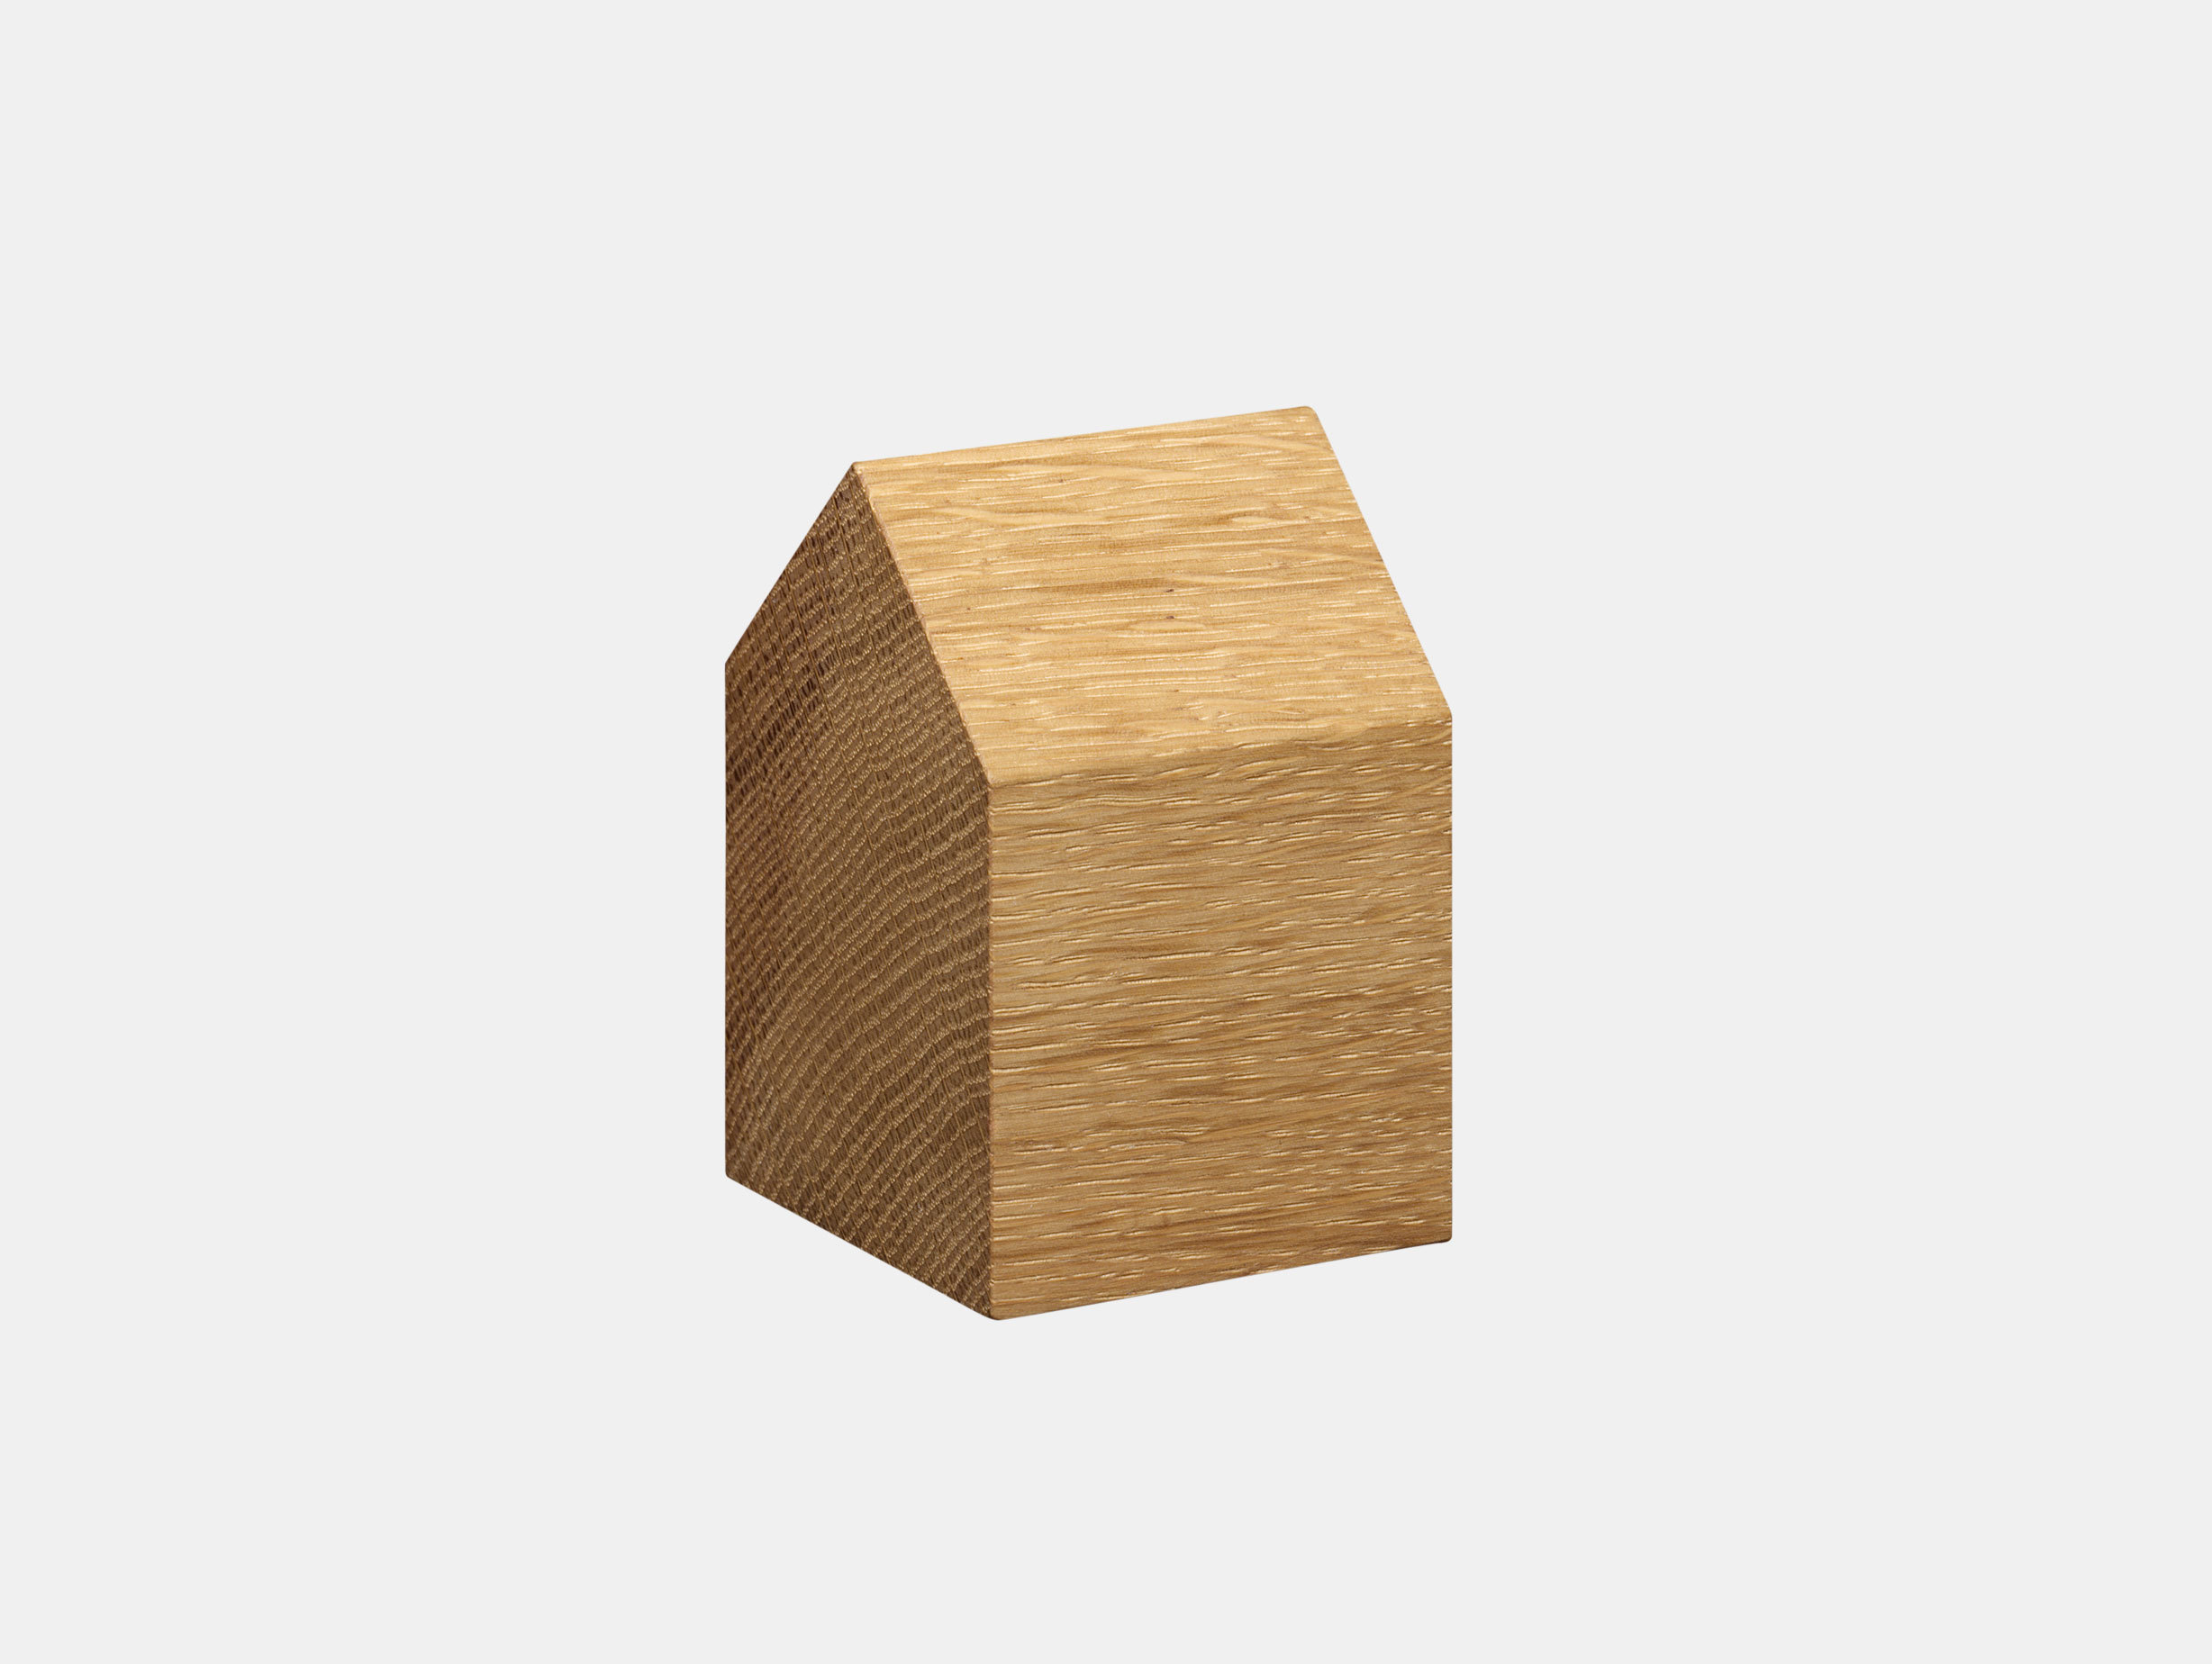 Haus Paperweight - Wood image 7